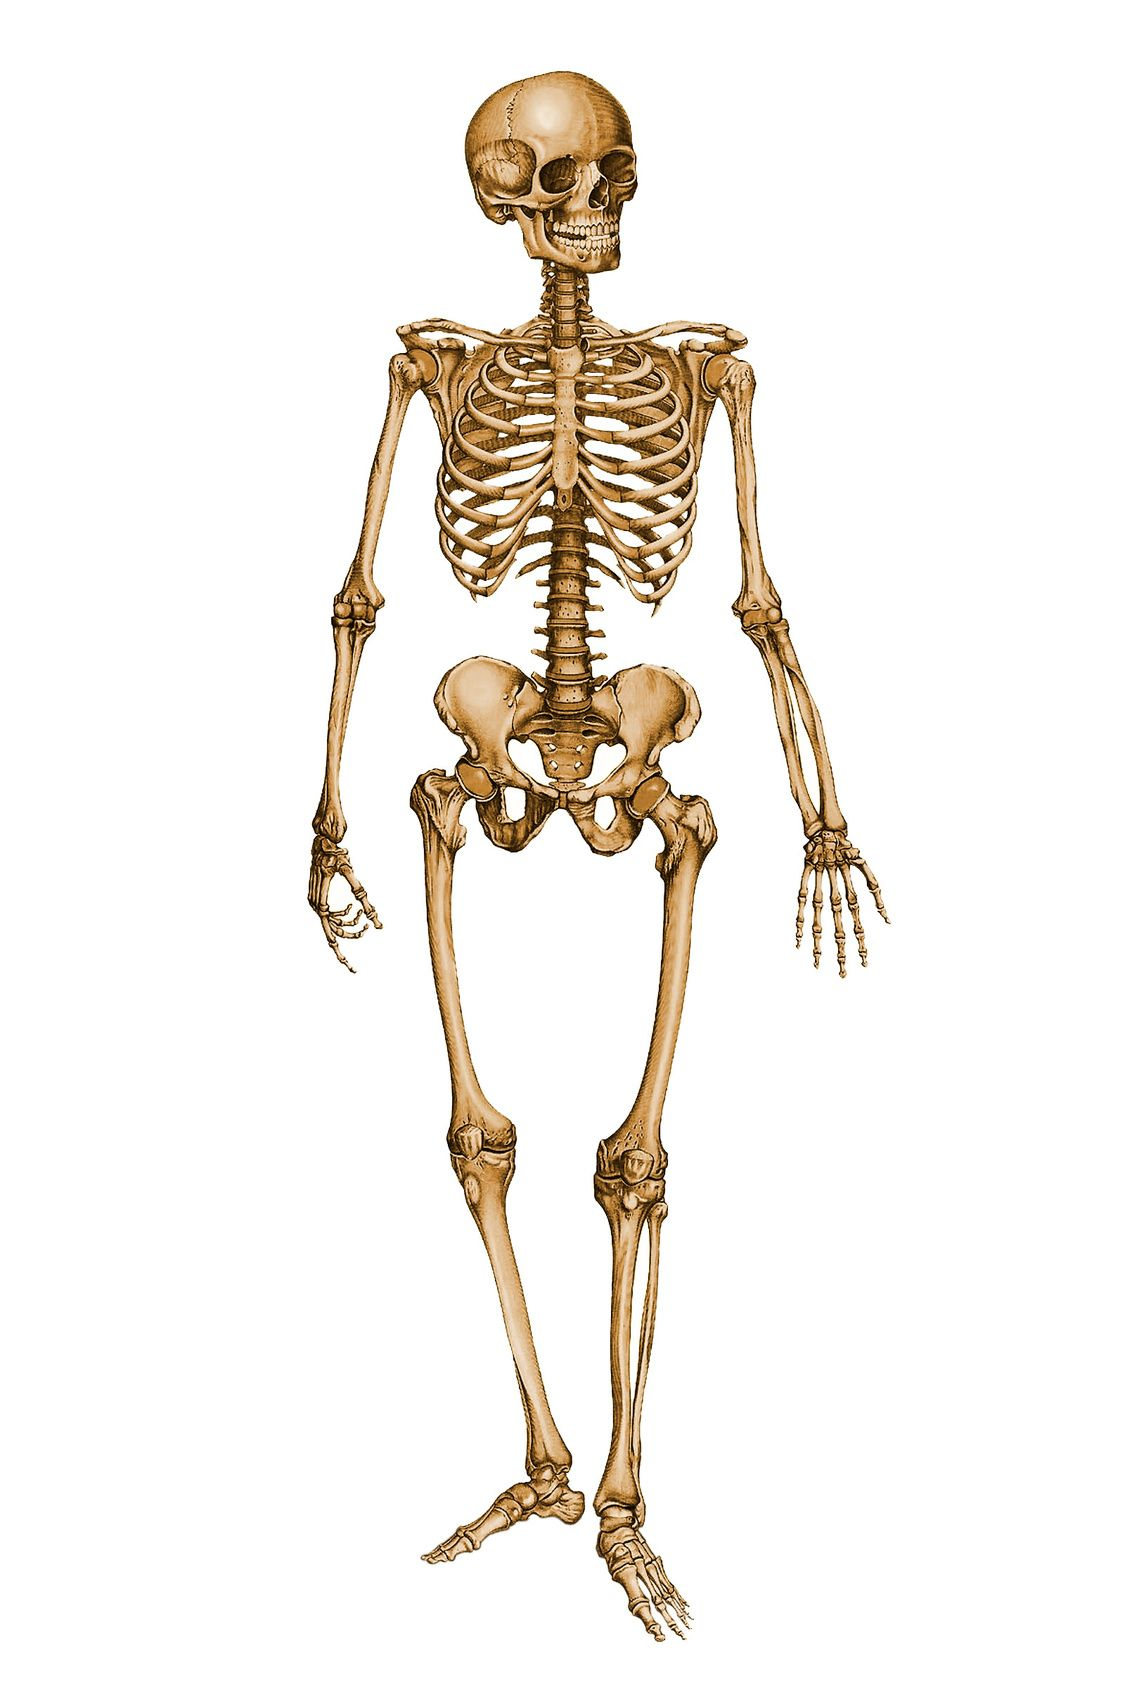 Skeleton Human Skeleton 12029879 In Stockproject By